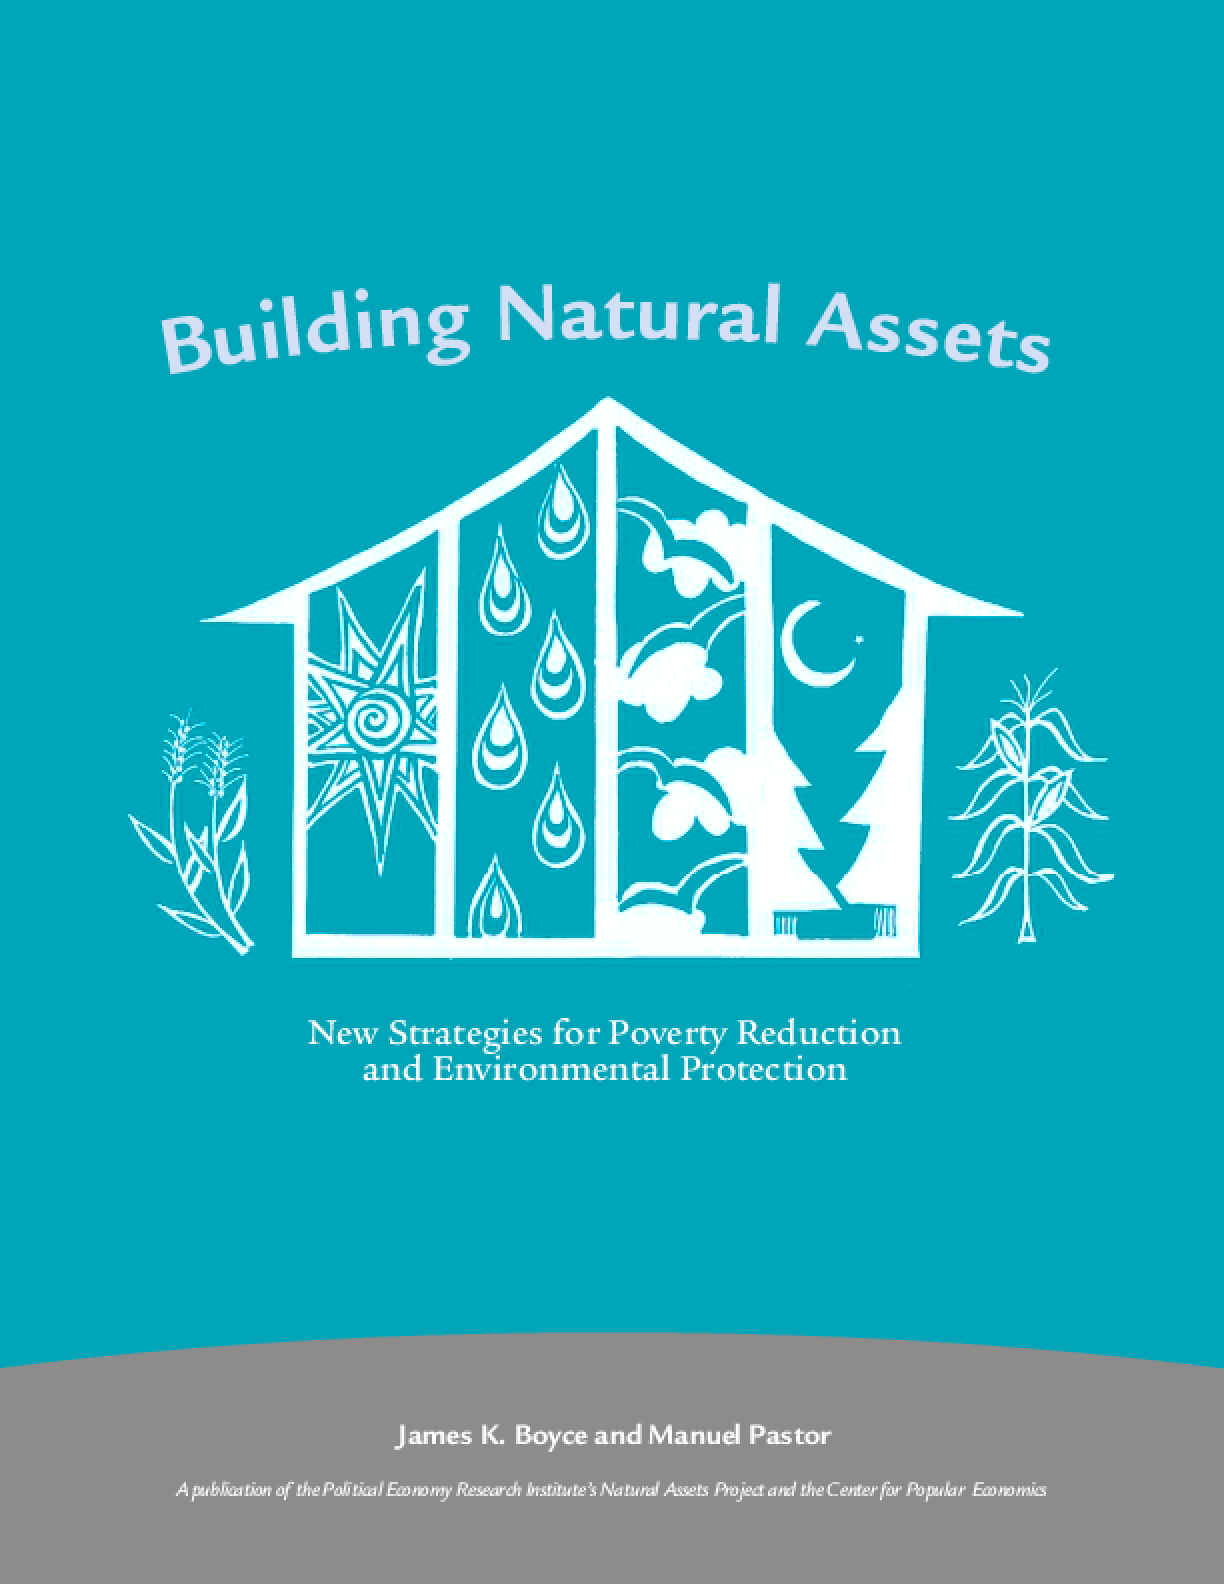 Building Natural Assets: New Strategies for Poverty Reduction and Environmental Protection